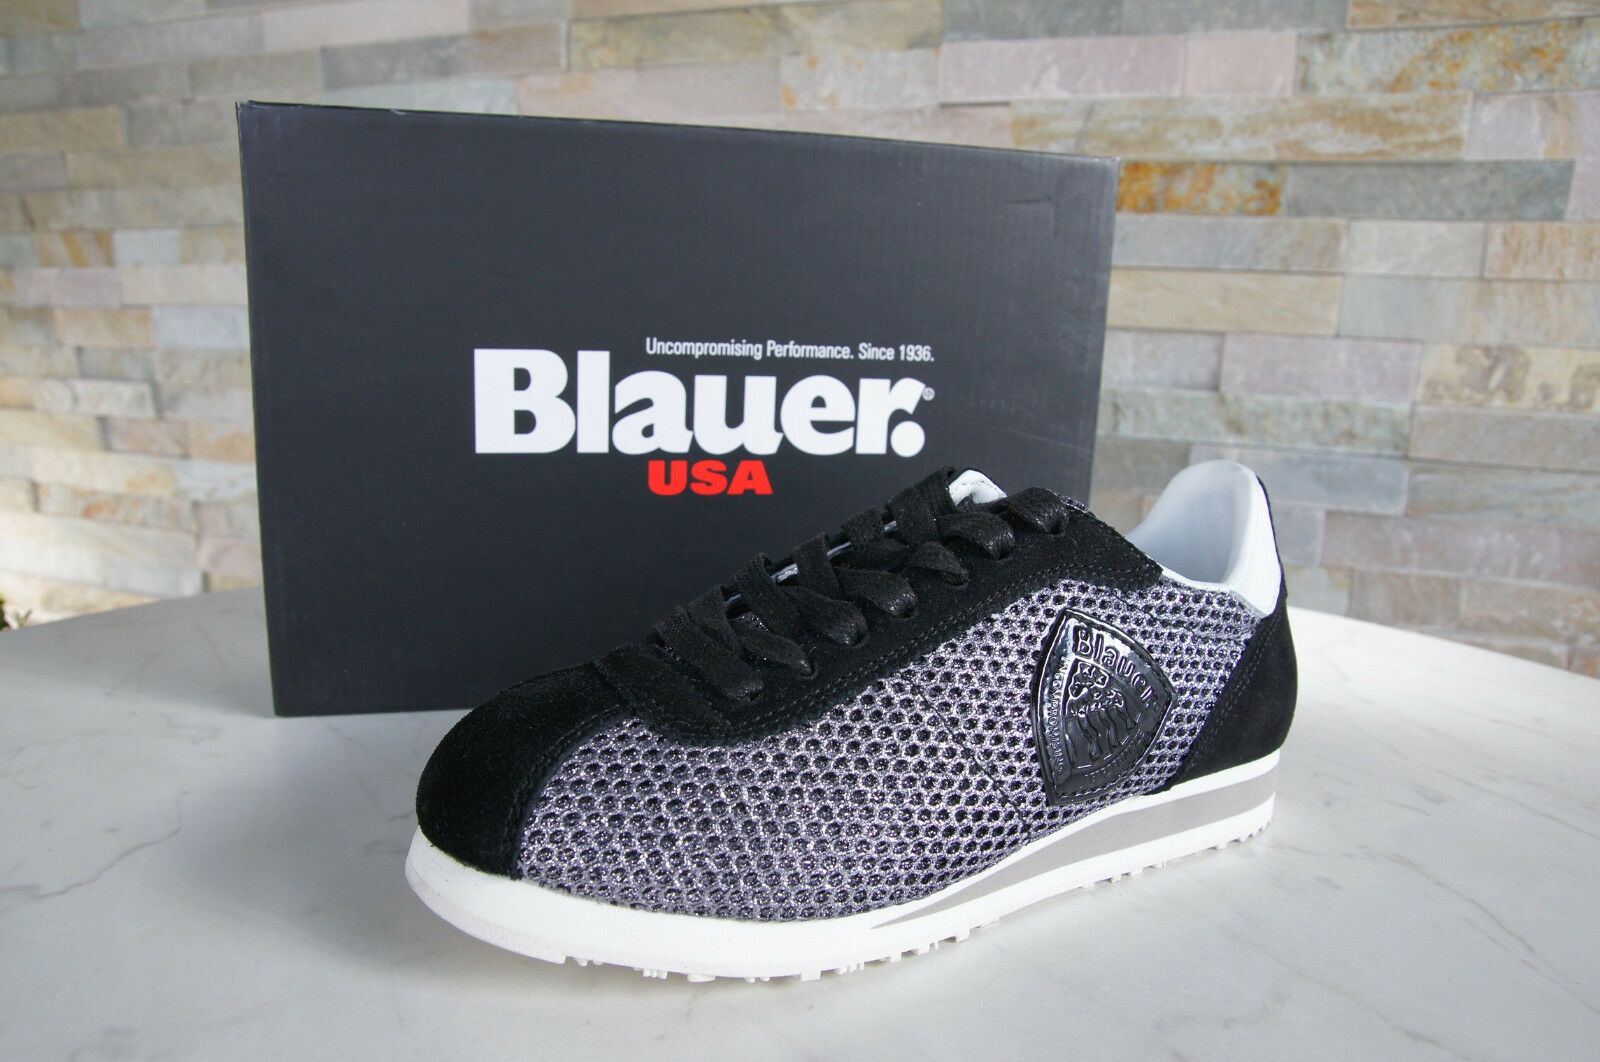 BLAUER USA Taglia 41 SNEAKERS SNEAKERS SNEAKERS normalissime scarpe 7s Bowling mes nero NUOVO UVP 761d13